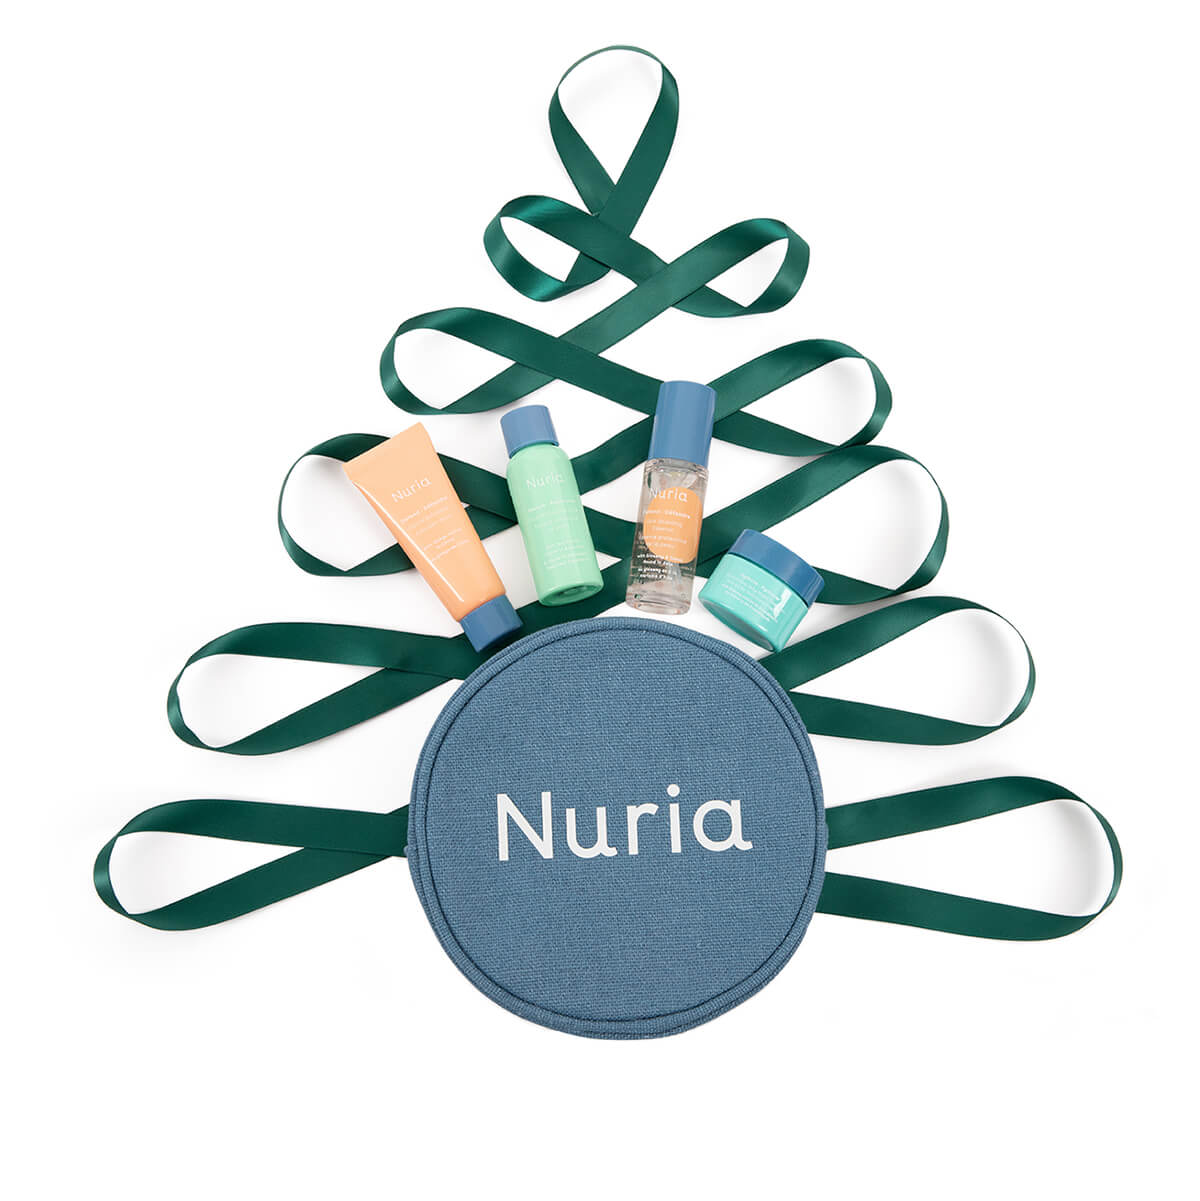 Nuria holiday gift guide